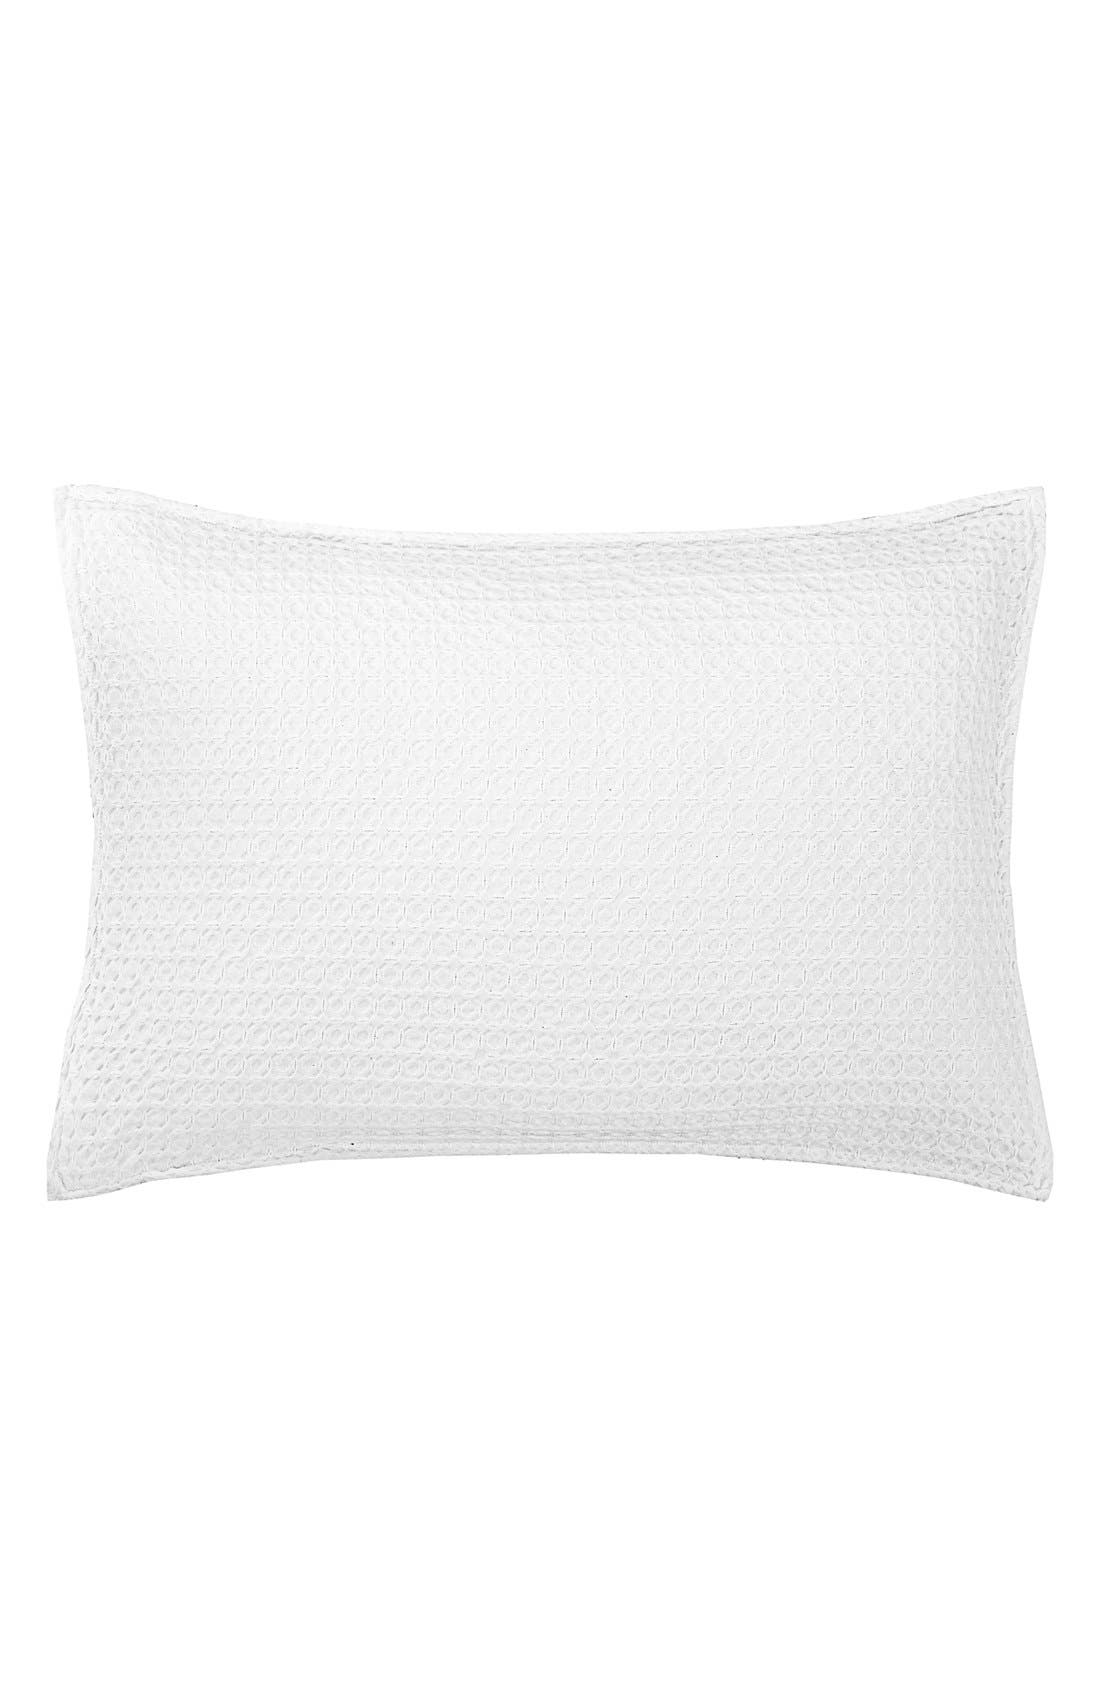 Paloma Sham,                         Main,                         color, White